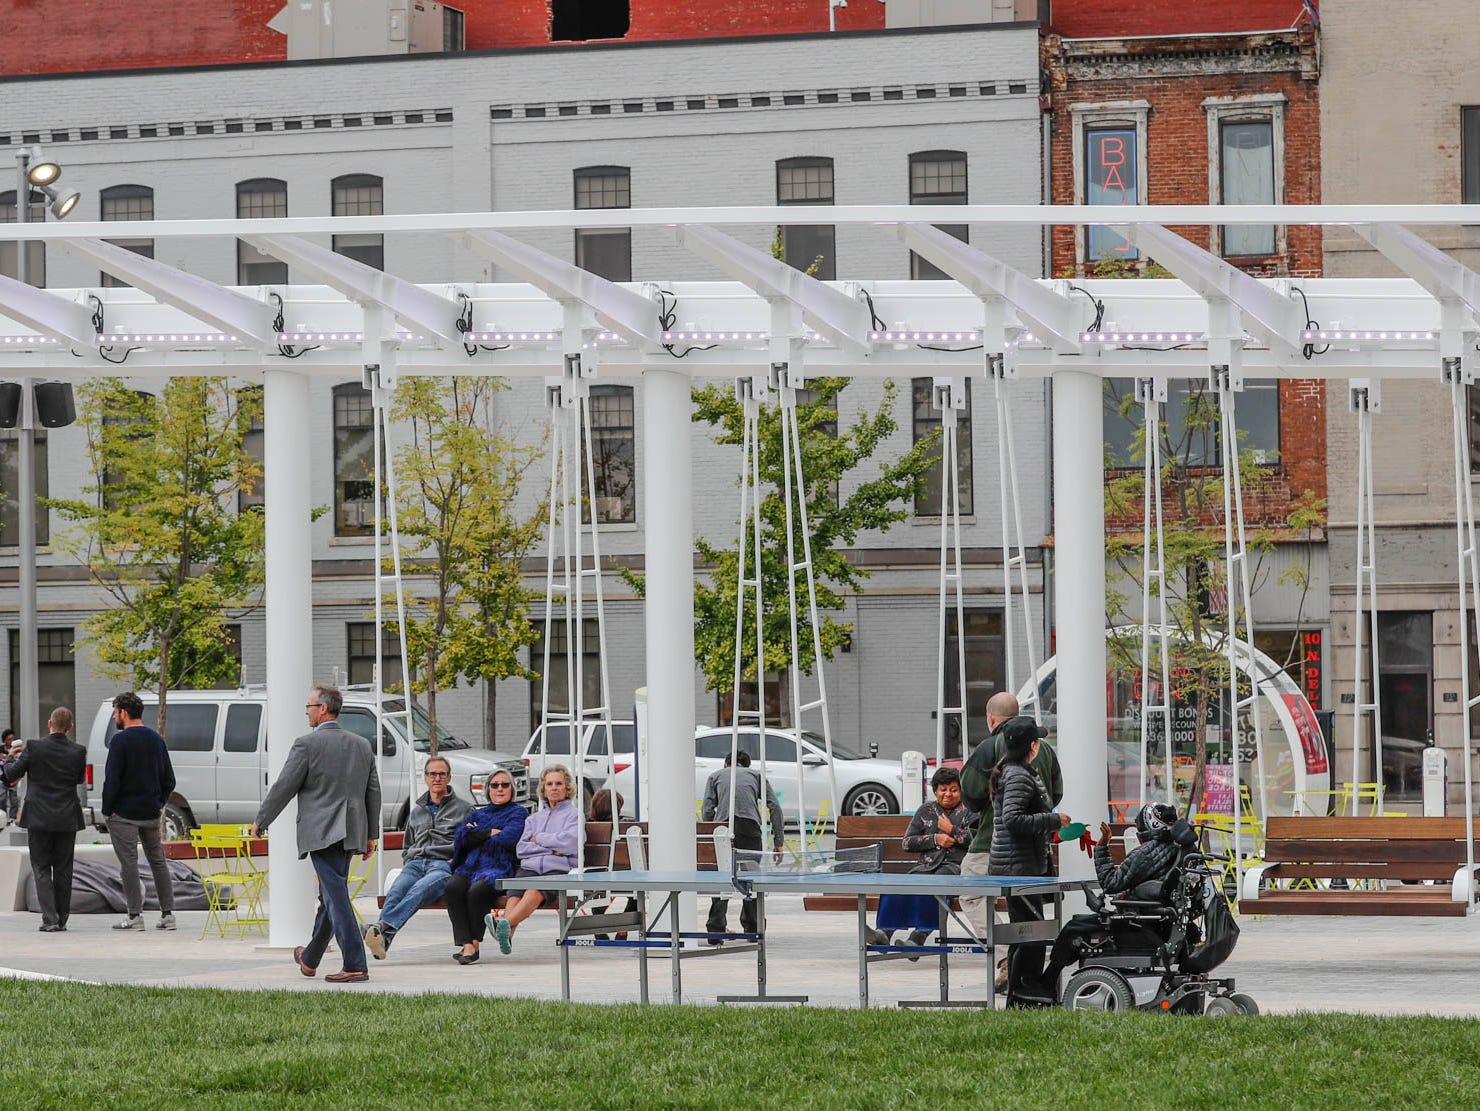 Guests explore the new Richard G. Lugar Plaza at the City-County Building in Indianapolis on Thursday, Oct. 11, 2018.